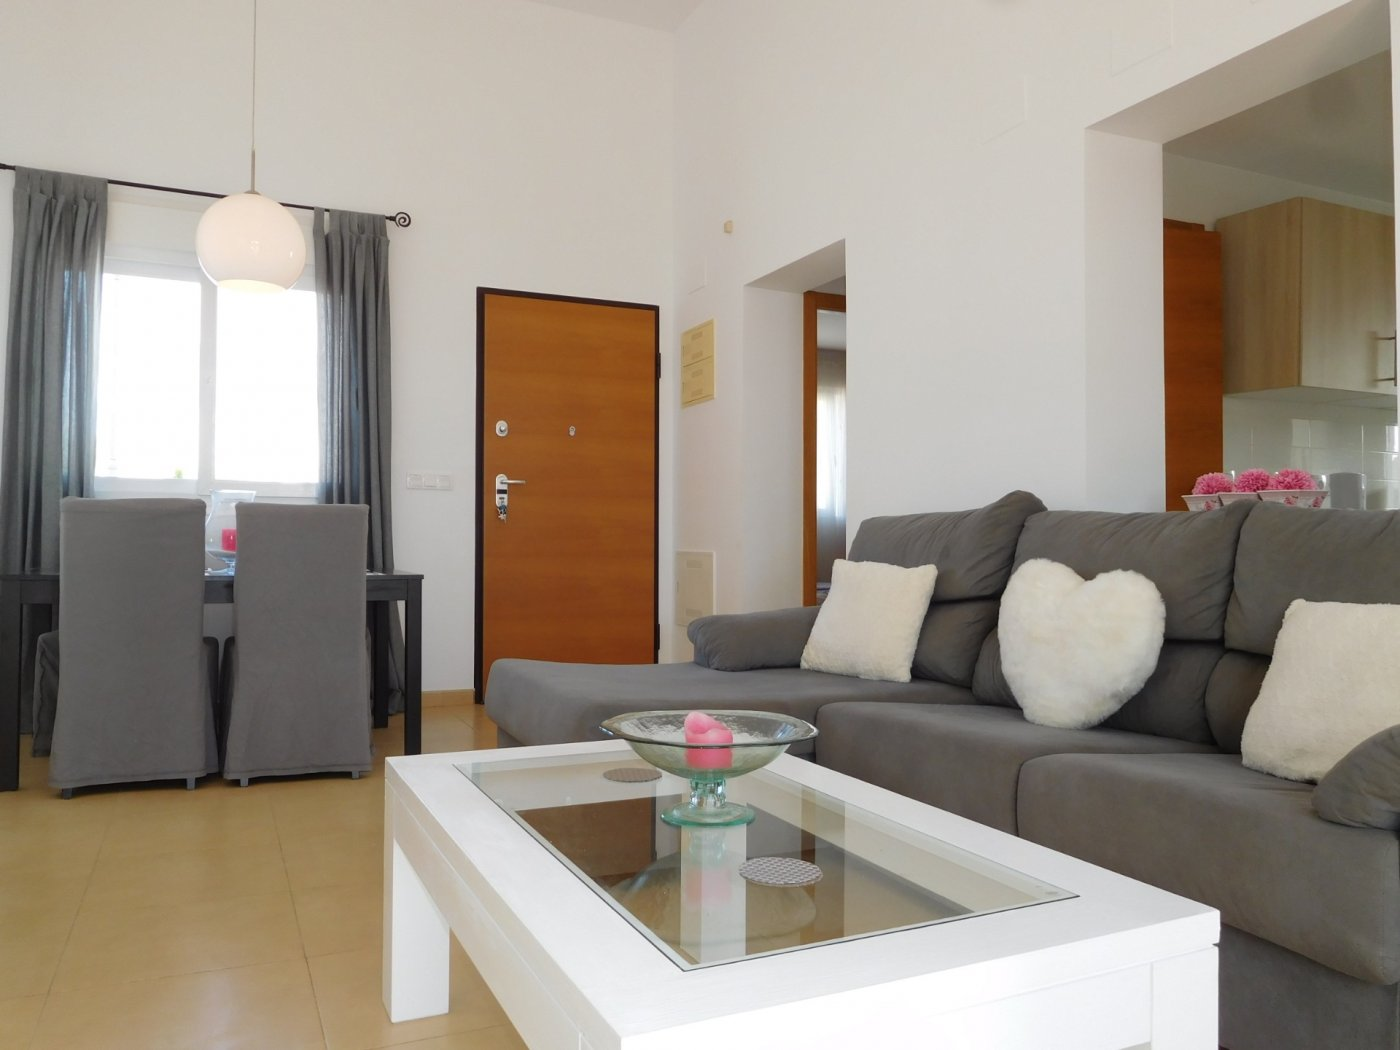 Gallery Image 3 of Casa For rent in Condado De Alhama, Alhama De Murcia With Pool